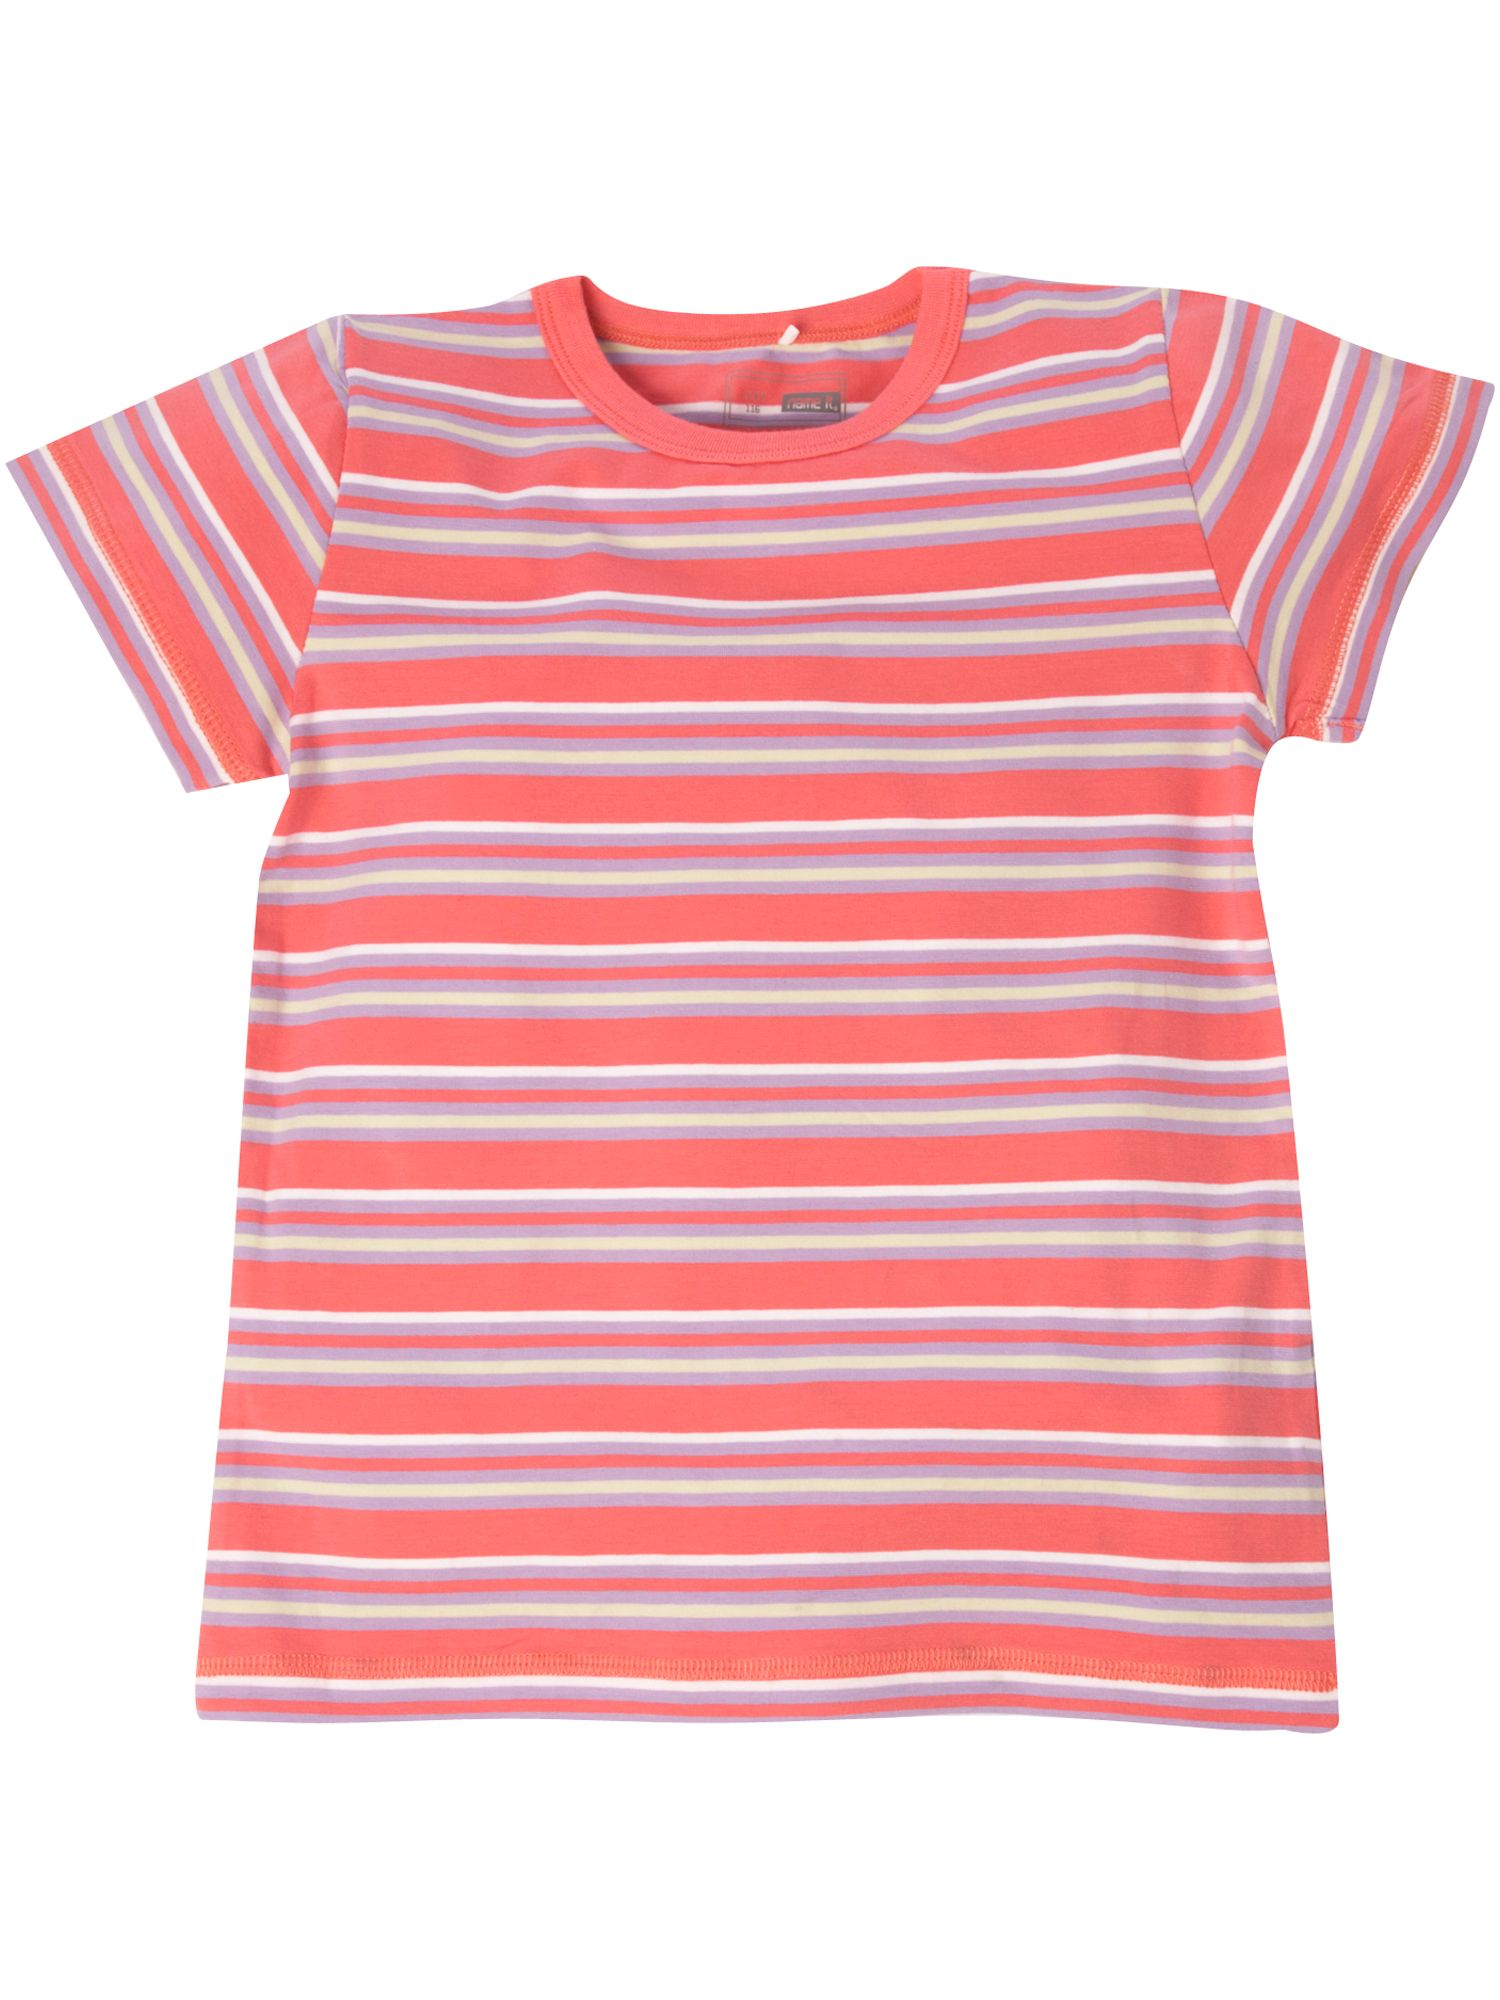 name it Short-sleeved striped T-shirt - Coral `12 yrs,4 product image